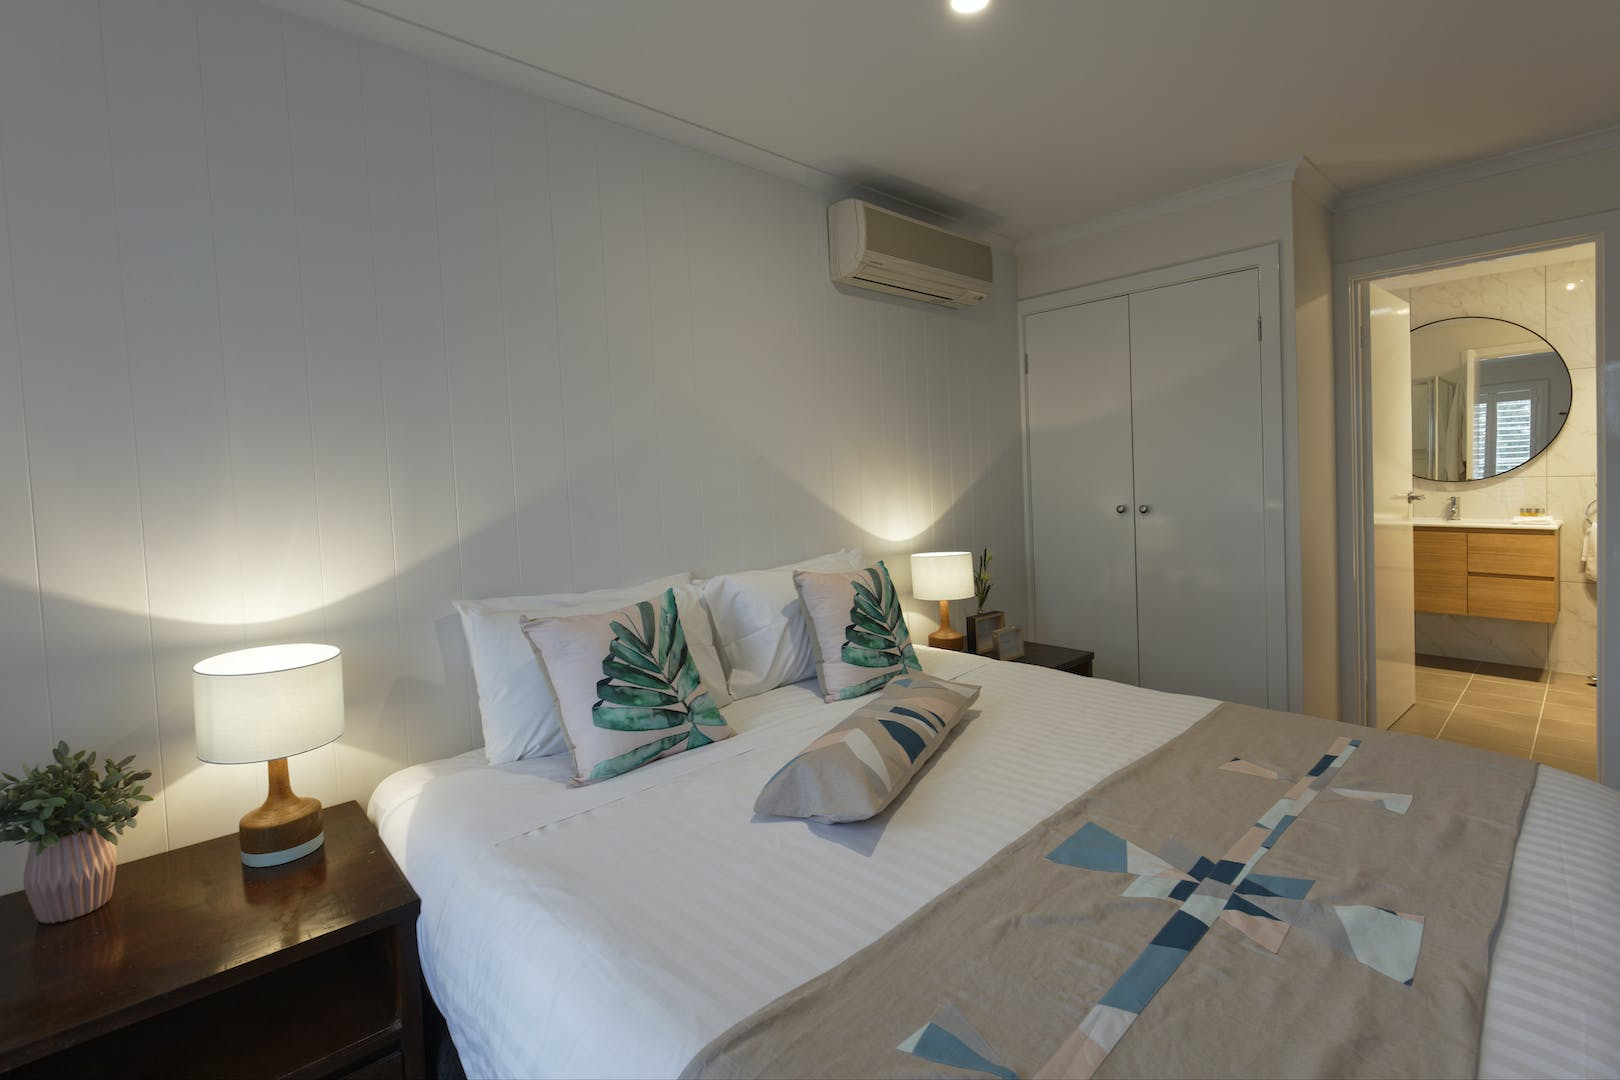 Inverloch accommodation The Sandy Mount Room 3 Slipper Bath Inverloch 3996